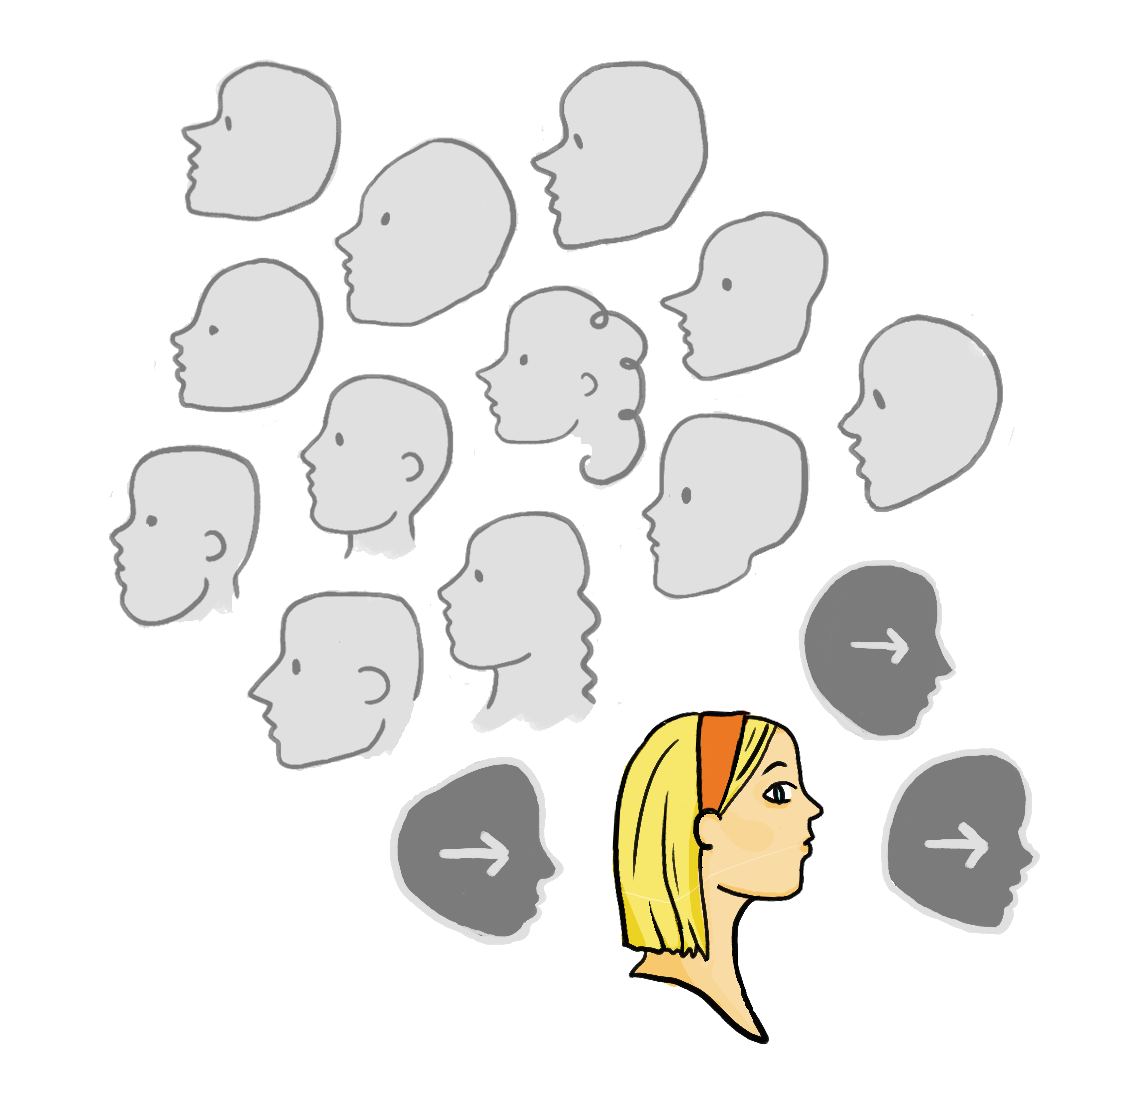 An example graphic where a small group wants to face left but are the only ones represented